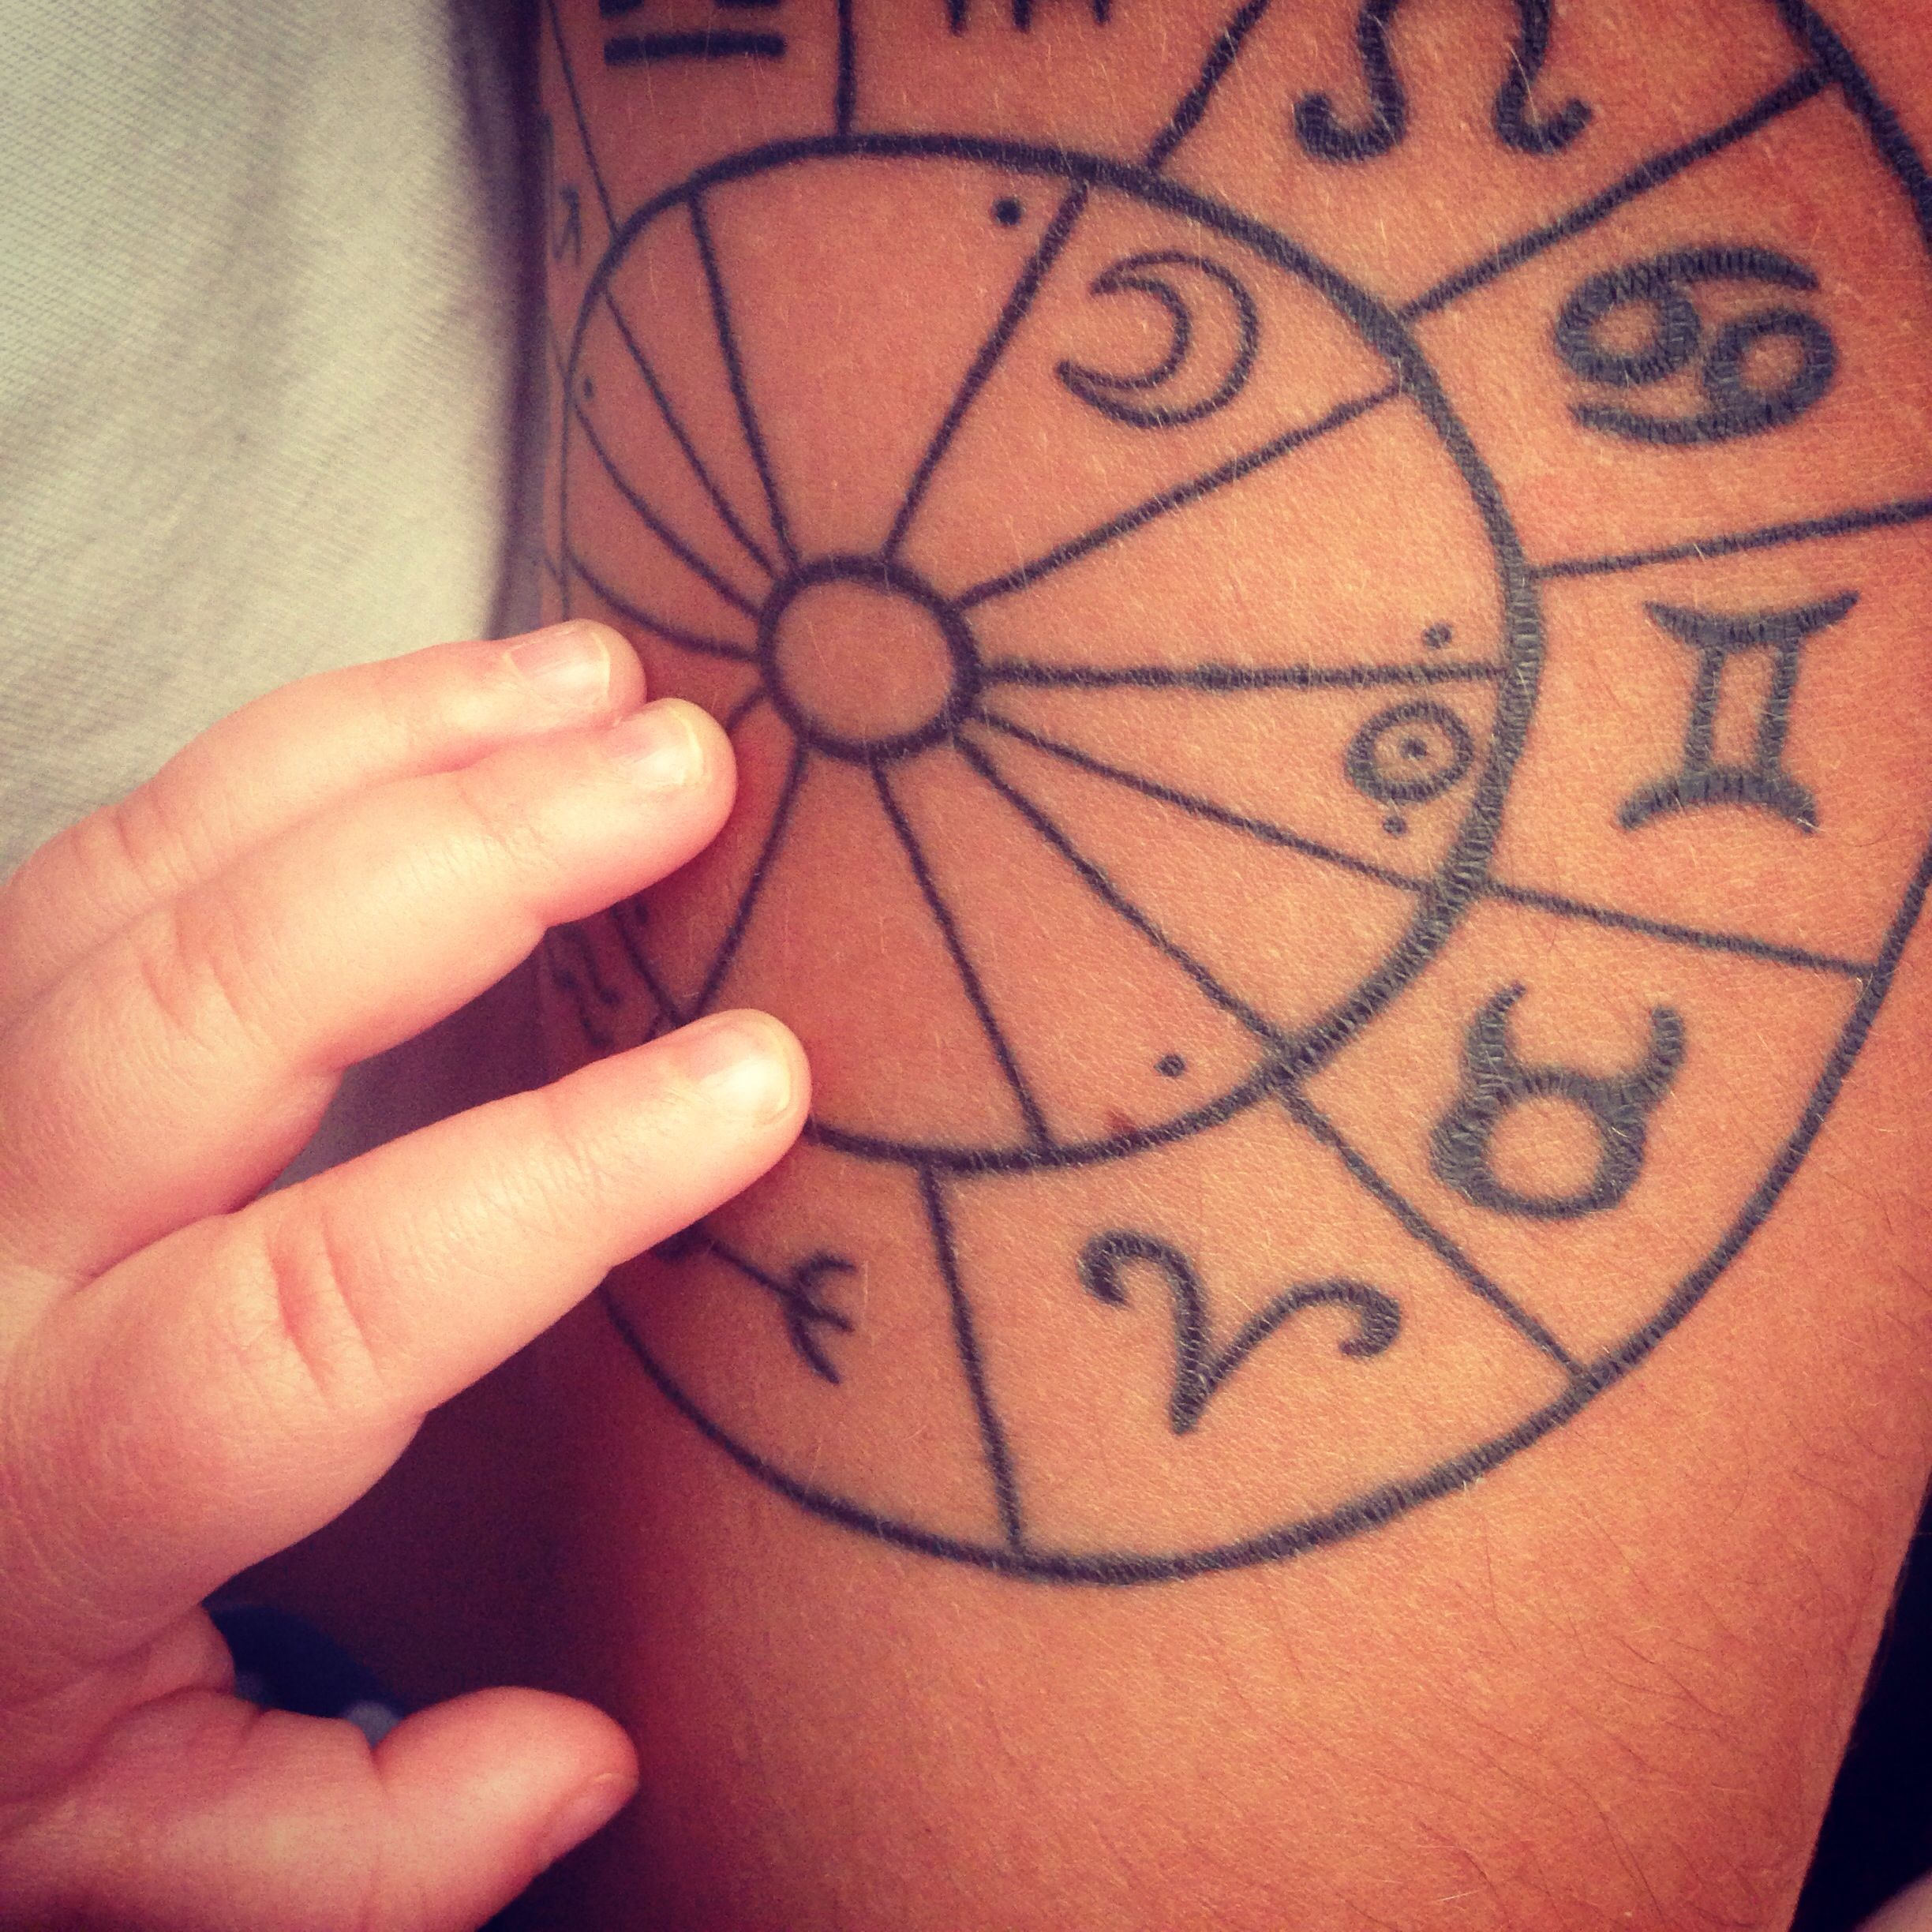 Astrological birth chart tattoo gemini tattoos pinterest astrological birth chart tattoo gemini nvjuhfo Image collections